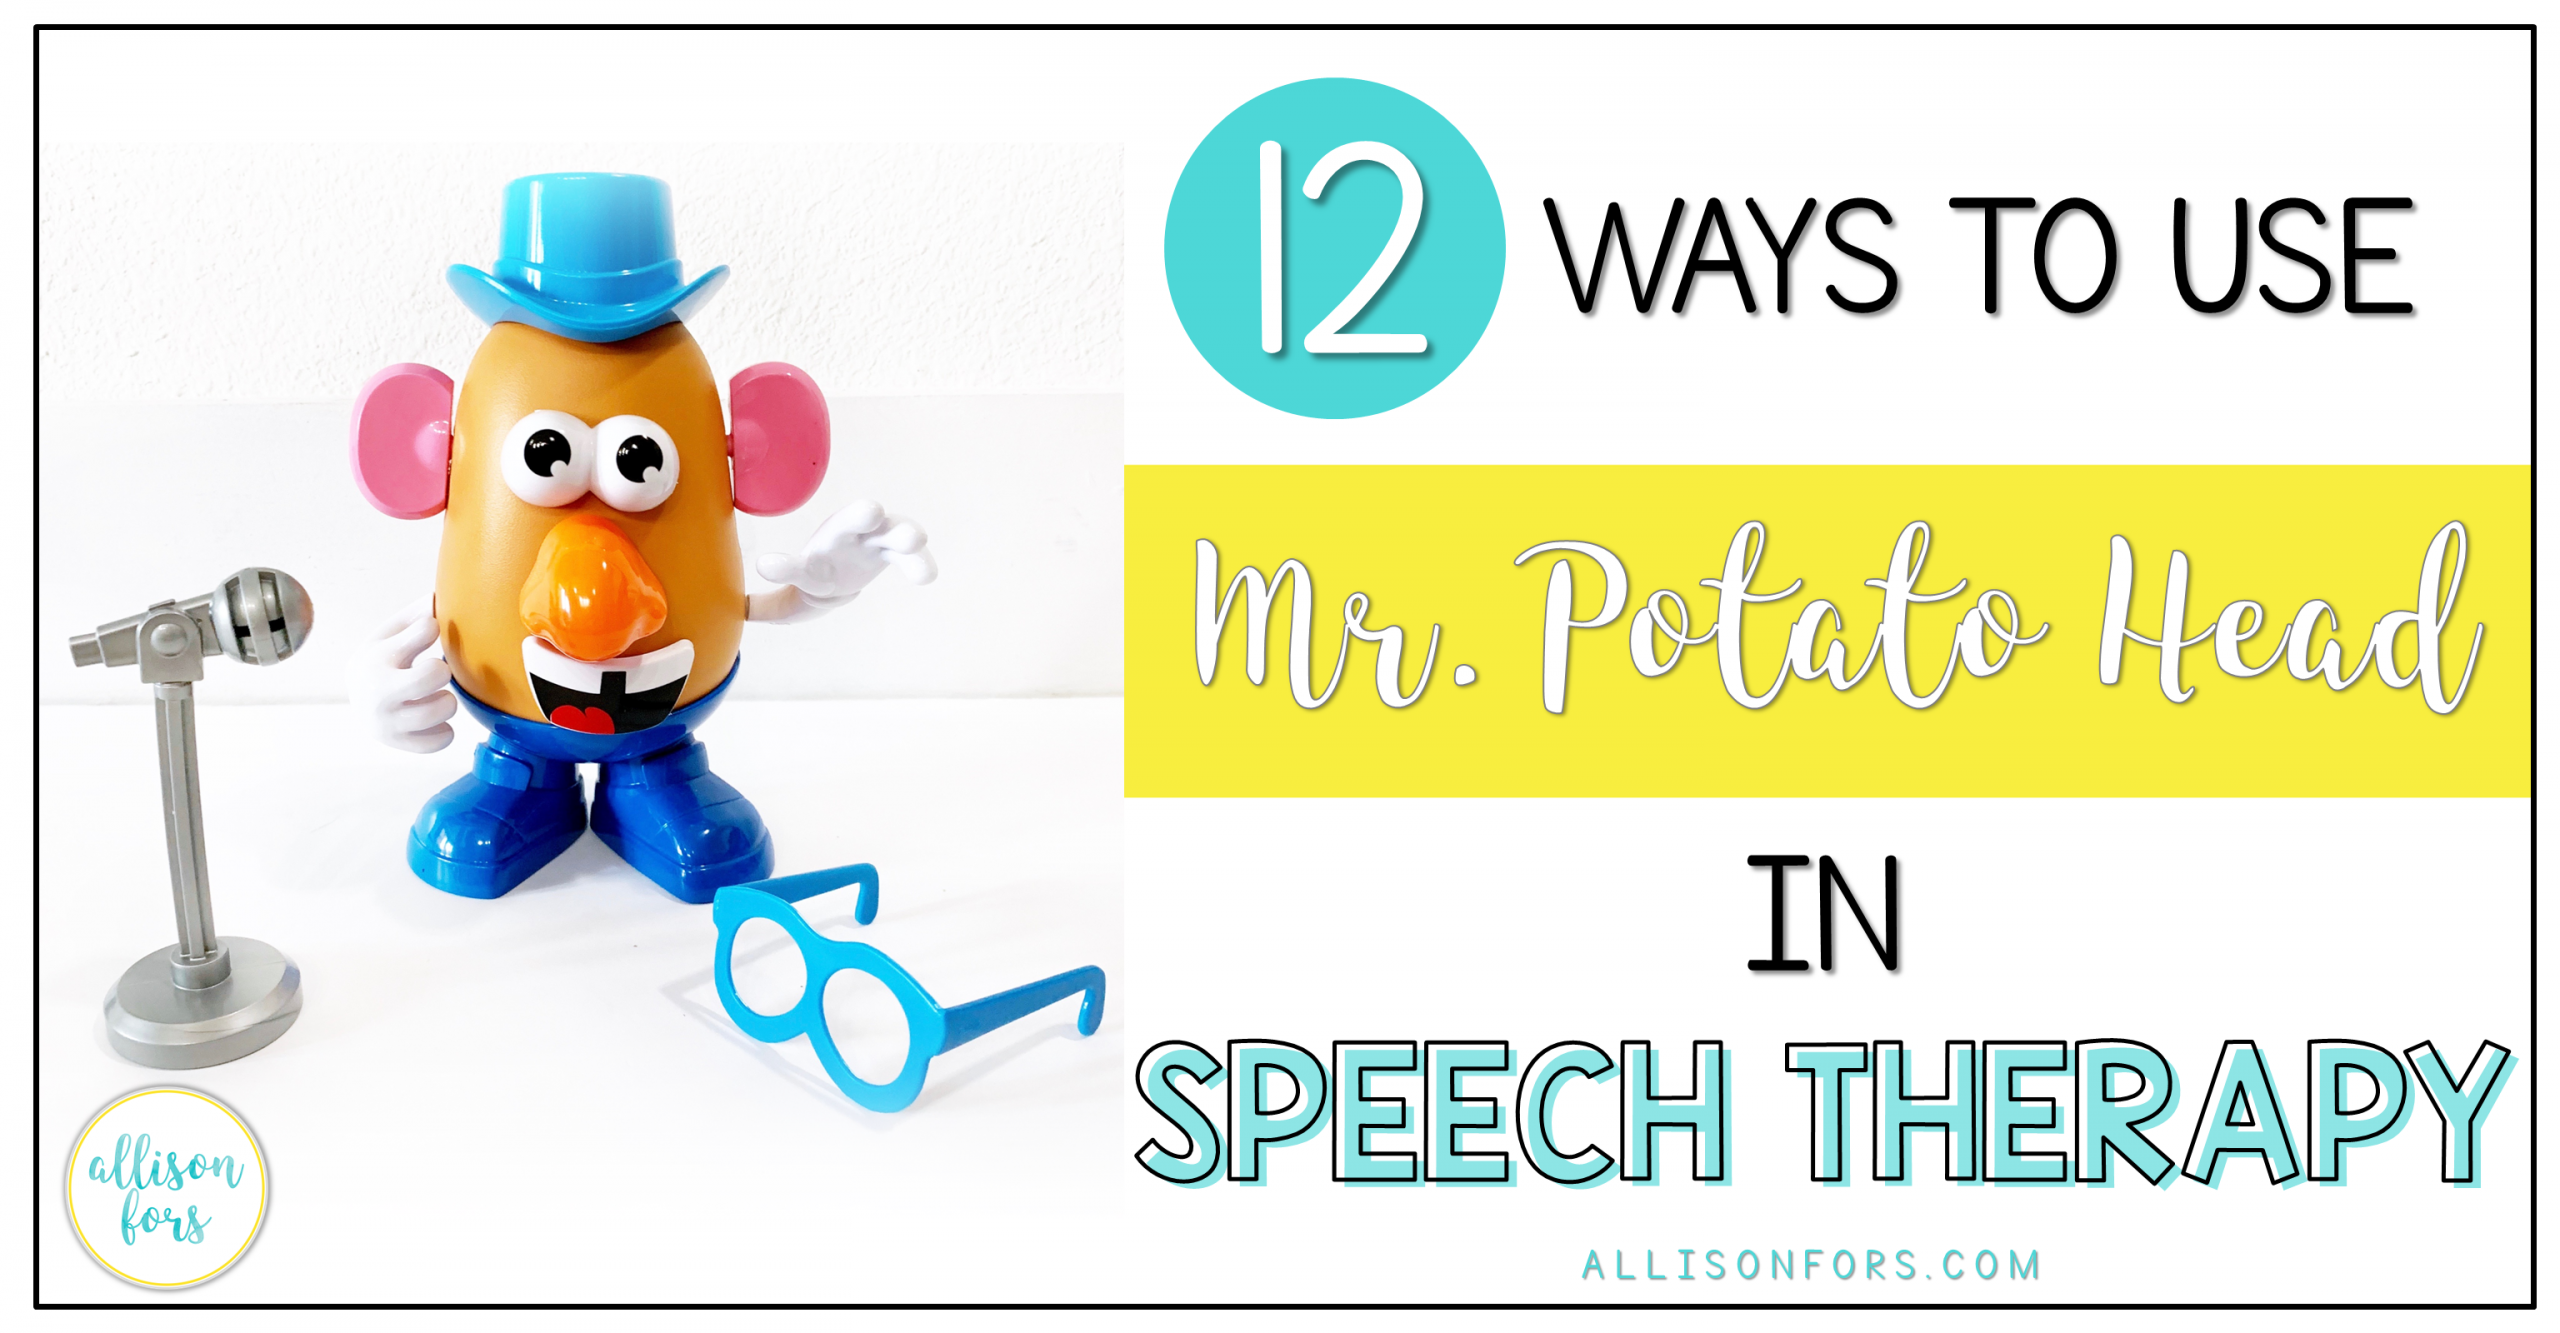 12 Ways to Use Mr. Potato Head in Speech Therapy